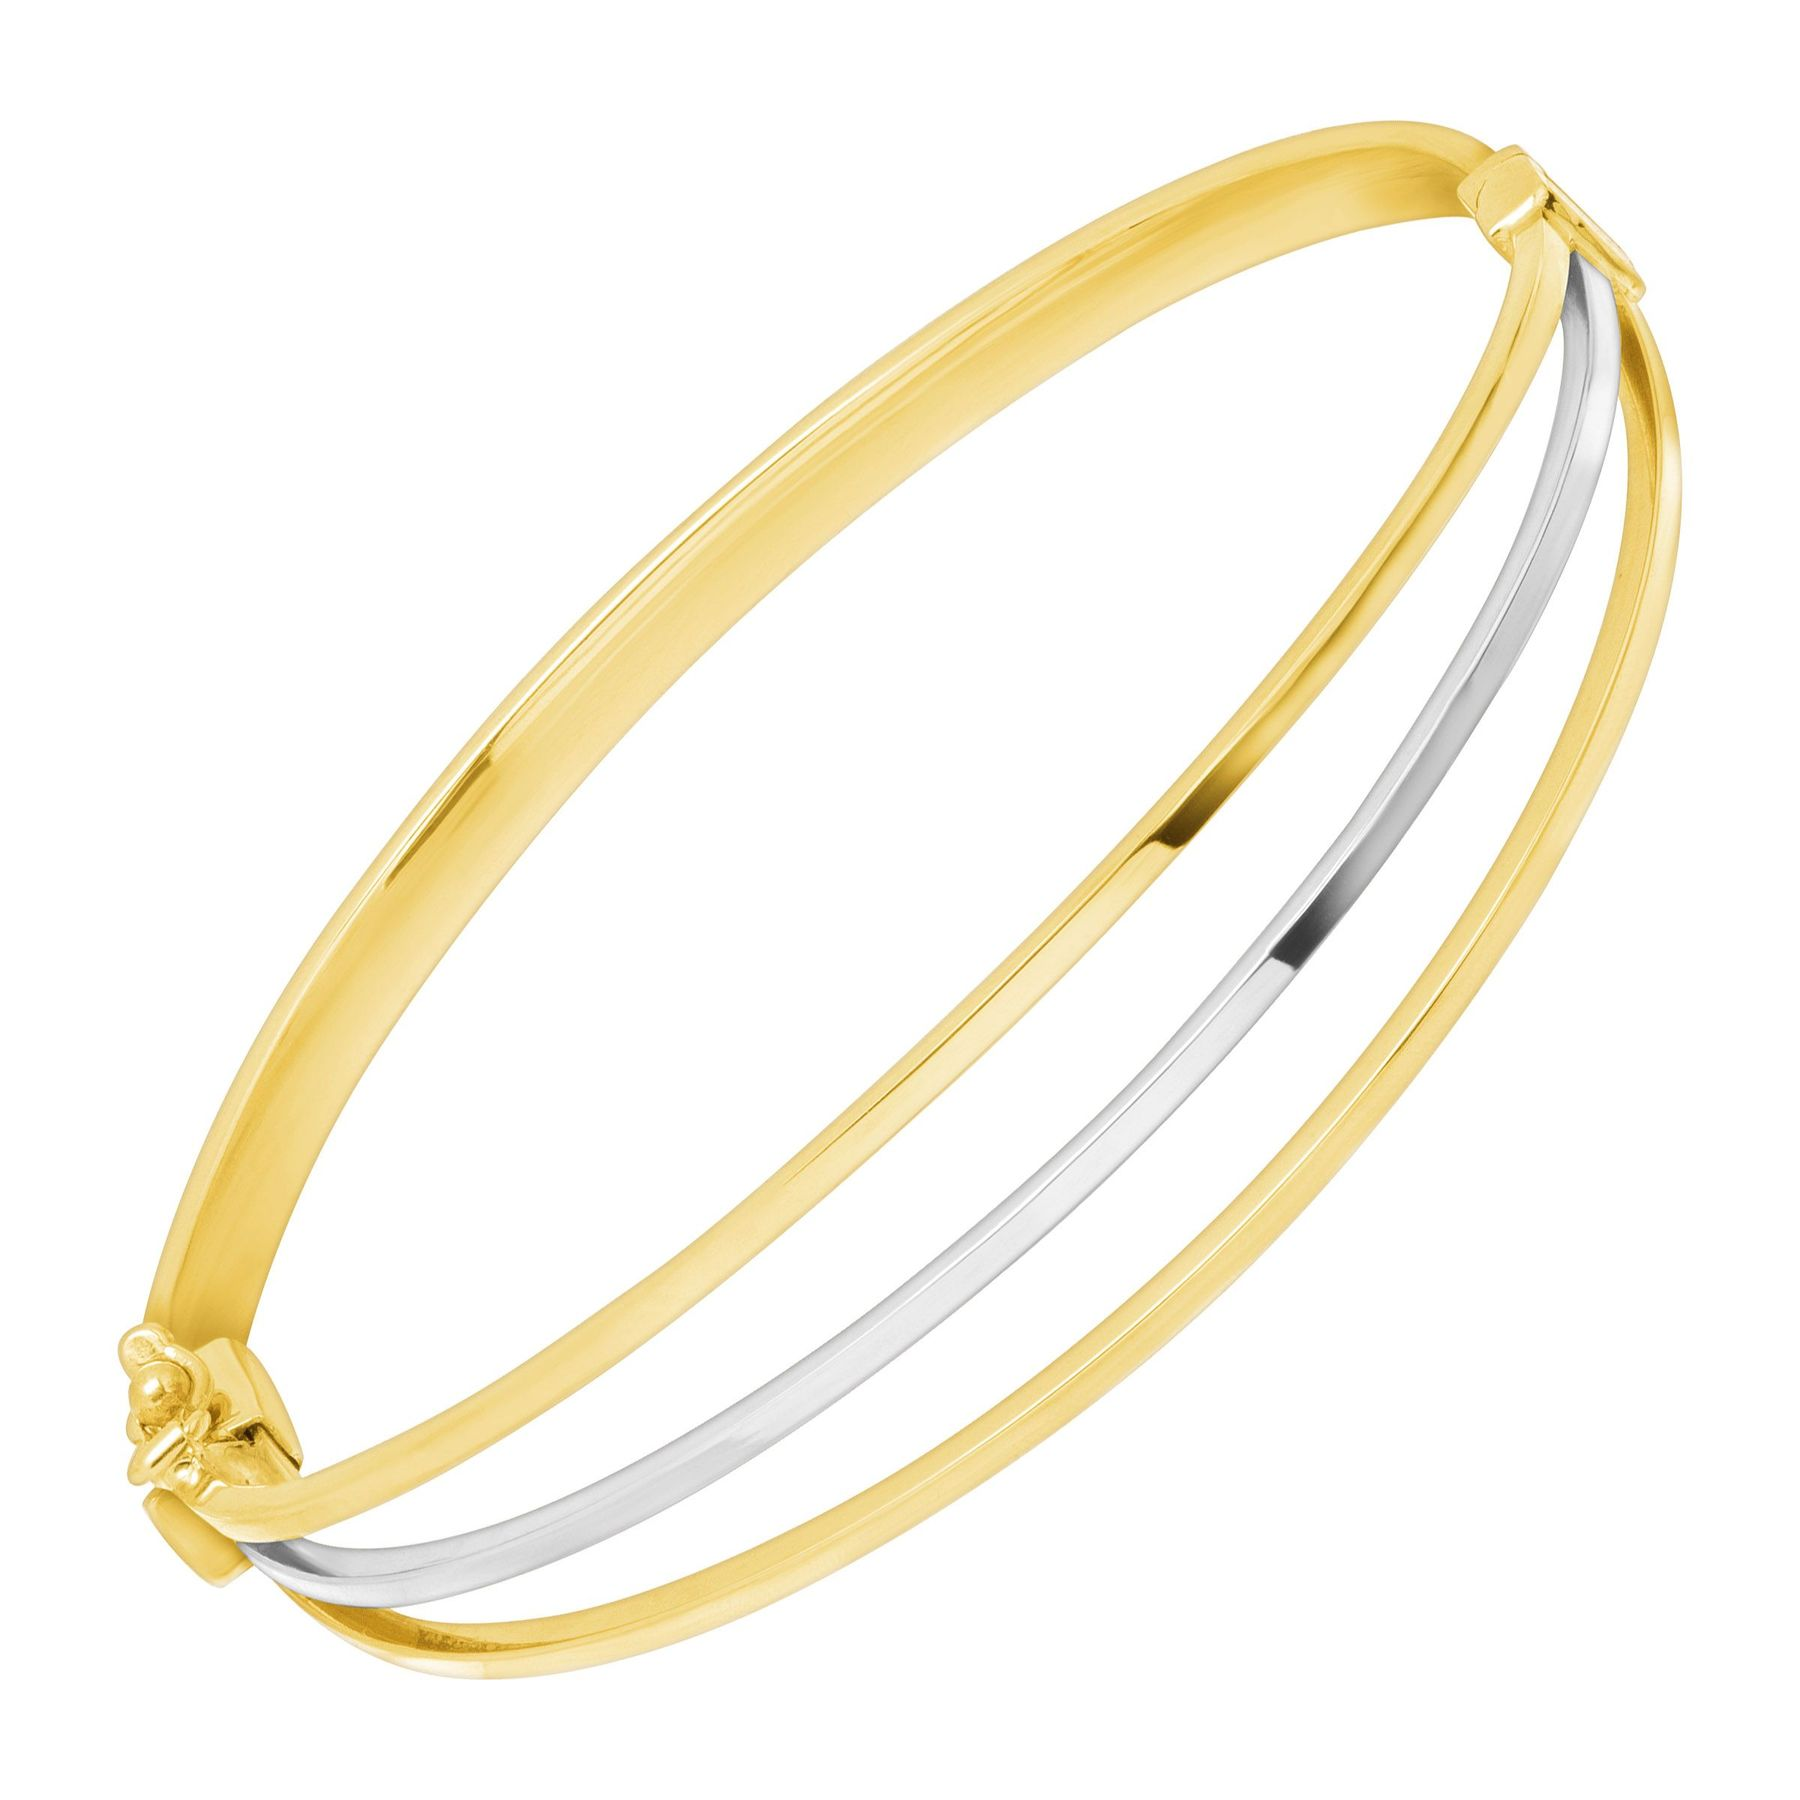 bangle pin accessories gold women jewelry popular dailywear beauty bracelet enameled bangles